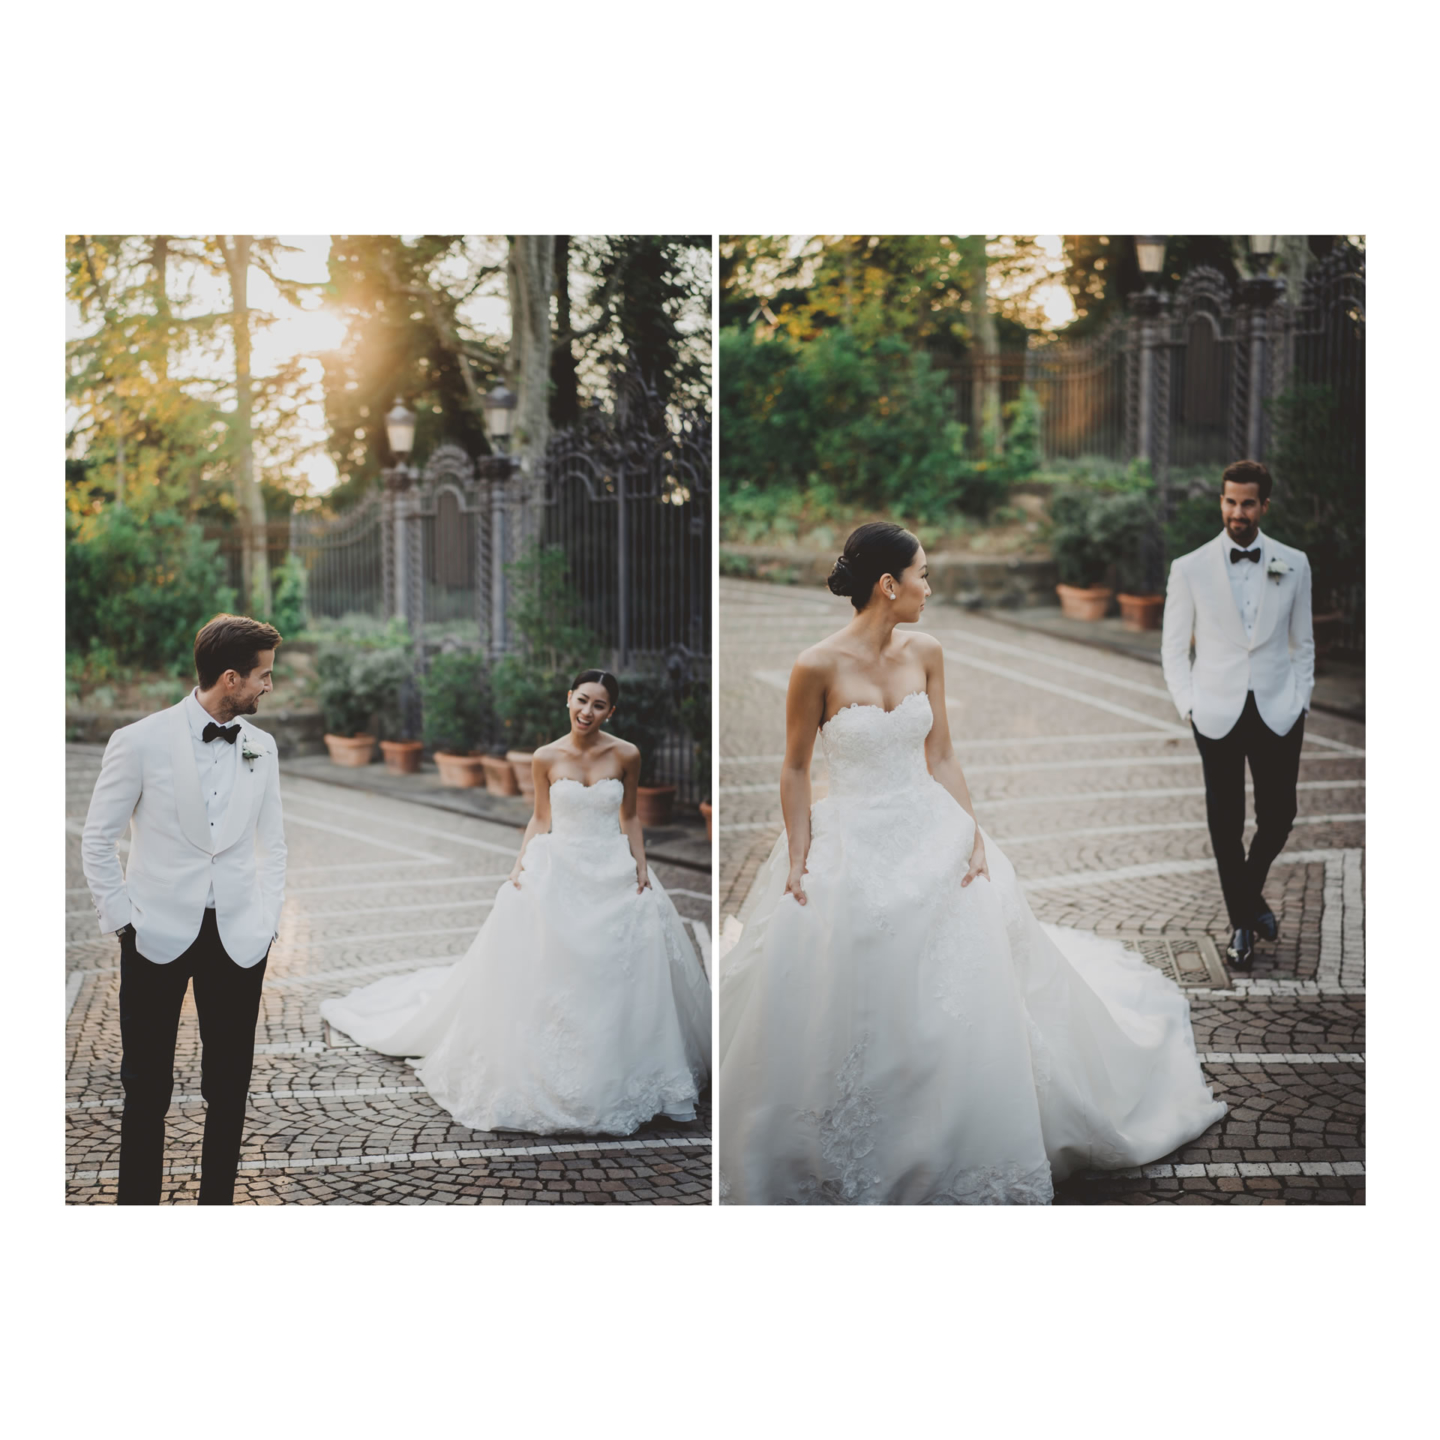 Luxury wedding in Florence (with a chinese tea ceremony) :: Luxury wedding in Florence (with a chinese tea ceremony) :: Luxury wedding photography - 31 :: Luxury wedding in Florence (with a chinese tea ceremony)